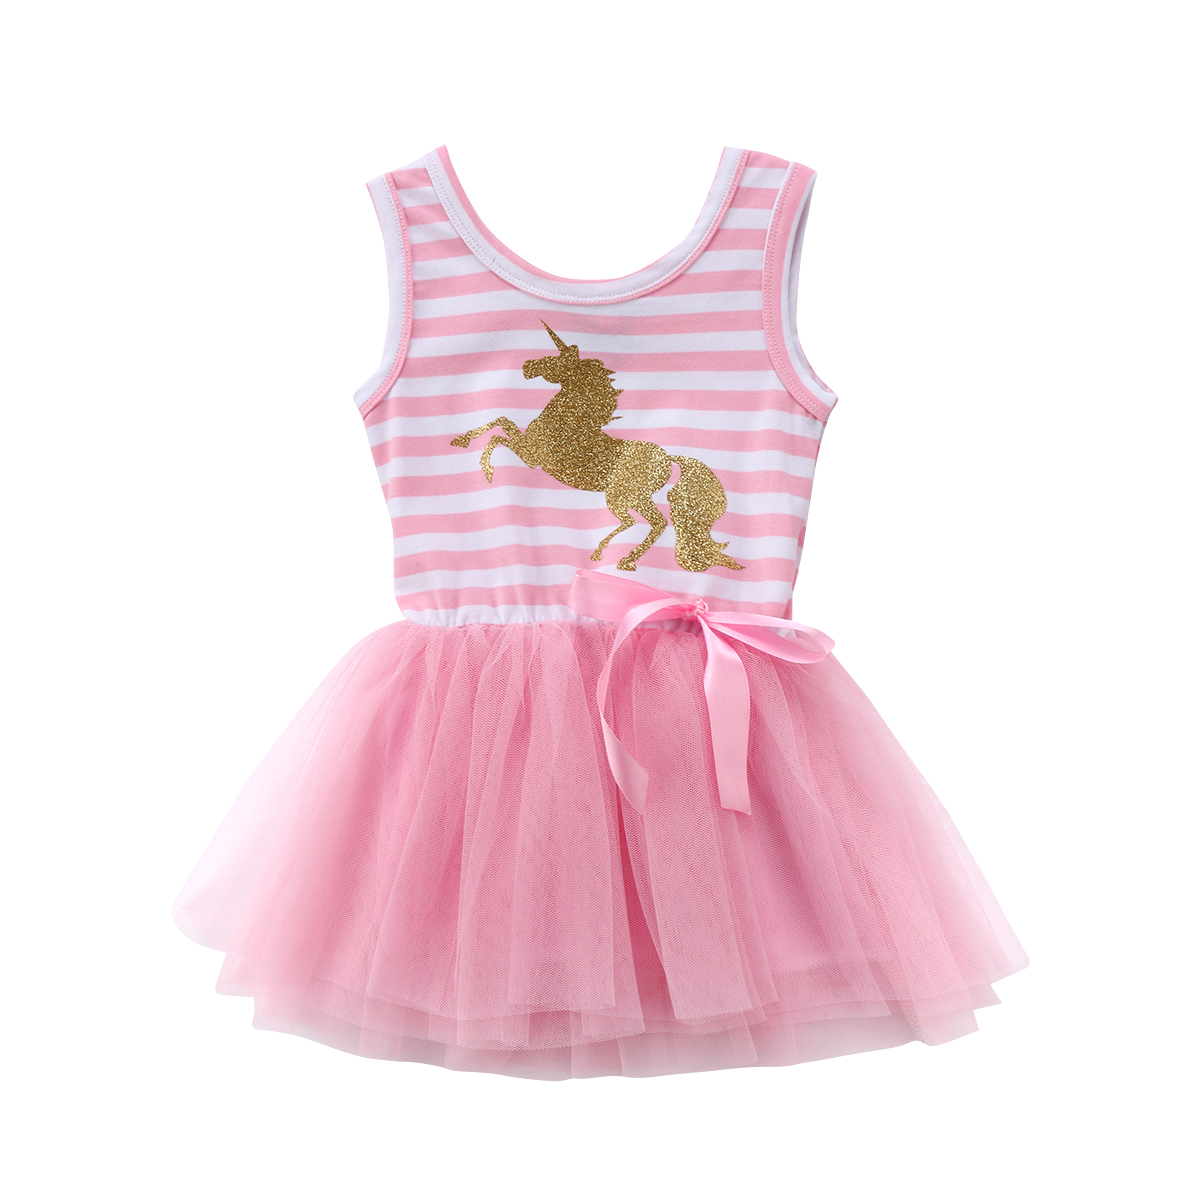 Unicorn Baby Girls Princess Dresses Striped Sleeveless Party Wedding Tutu Tulle Dresses Baby Clothes Innrech Market.com